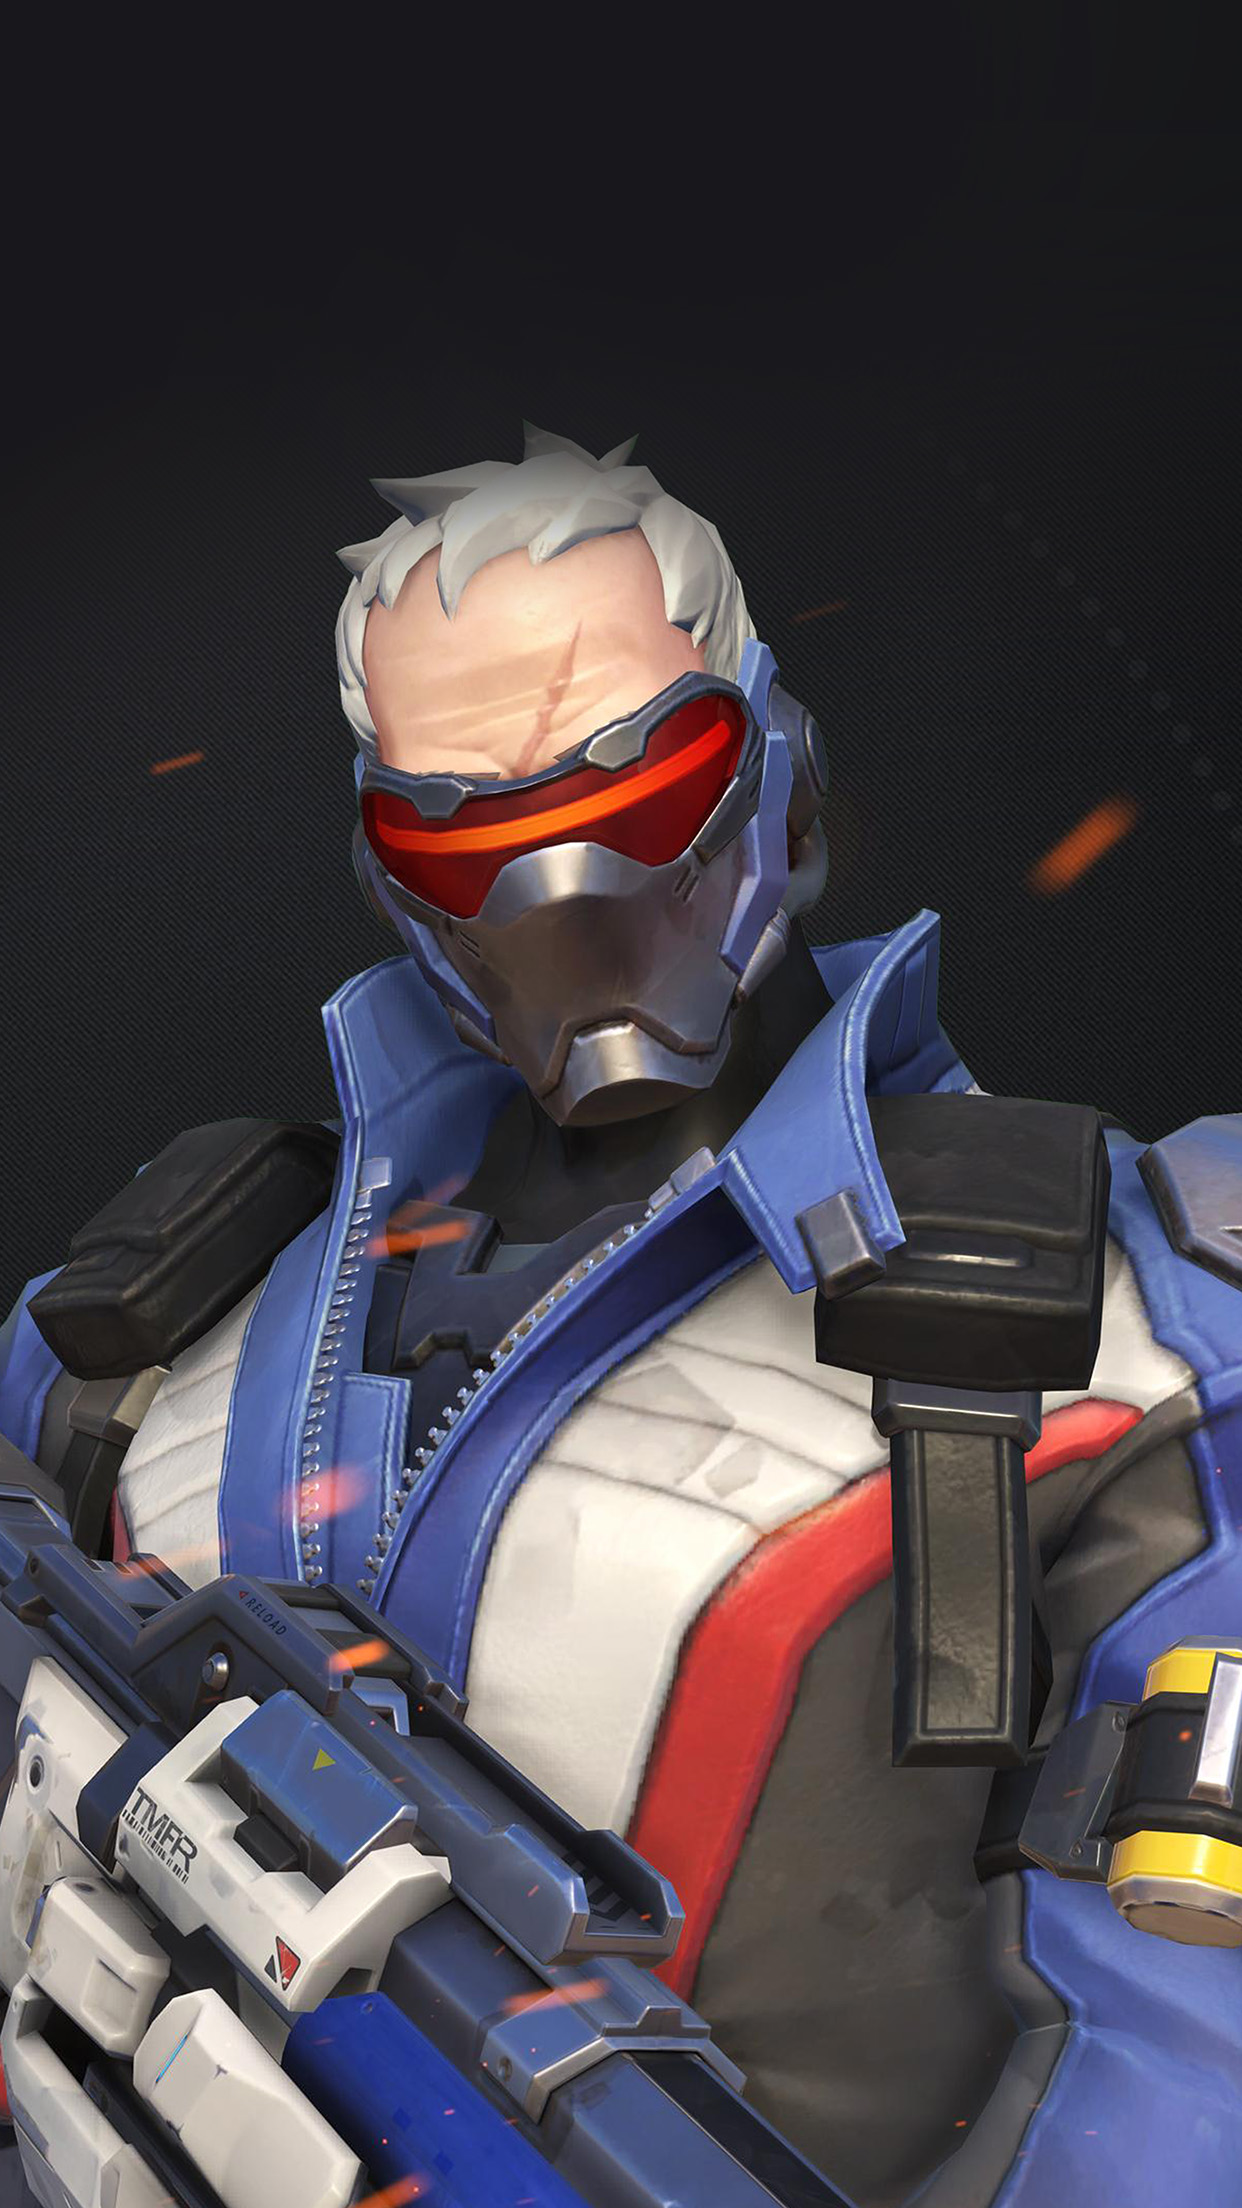 Fall Wallpaper Cute Papers Co Iphone Wallpaper Au09 Overwatch Soldier 76